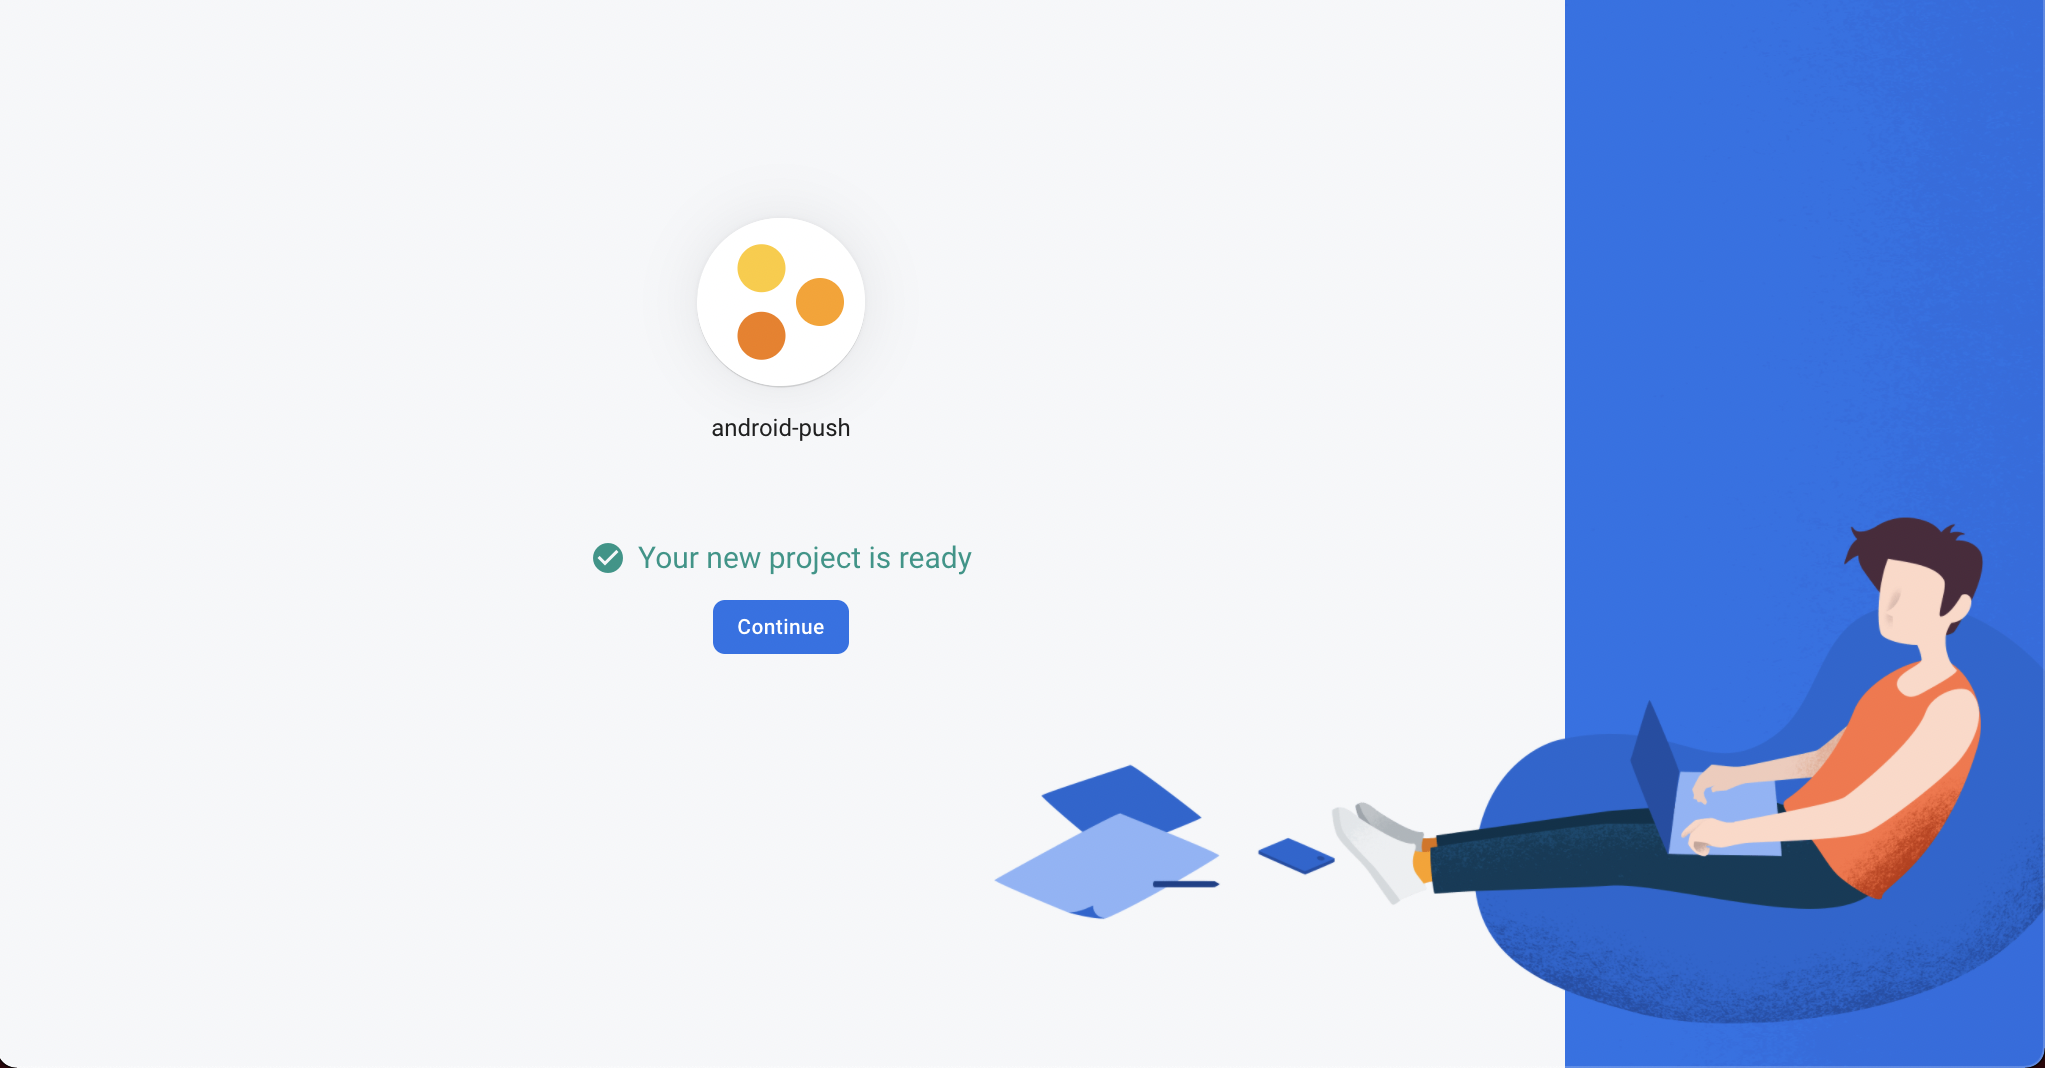 Your new project is ready confirmation